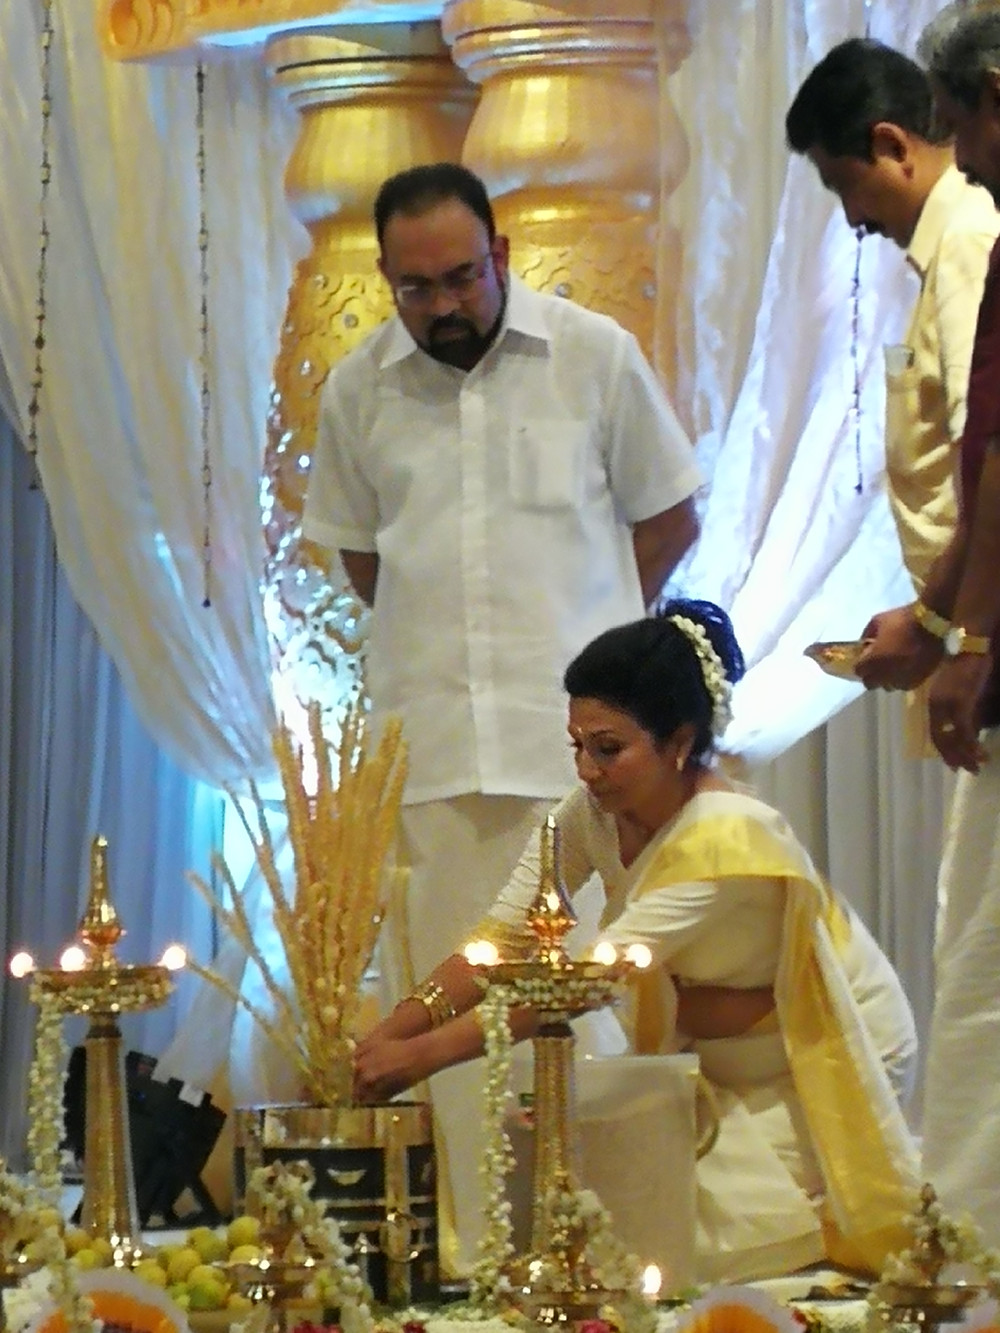 Dato' Fredrick and Datin Rufina at the ritual of Bride's Mother Lighting the Lamp.